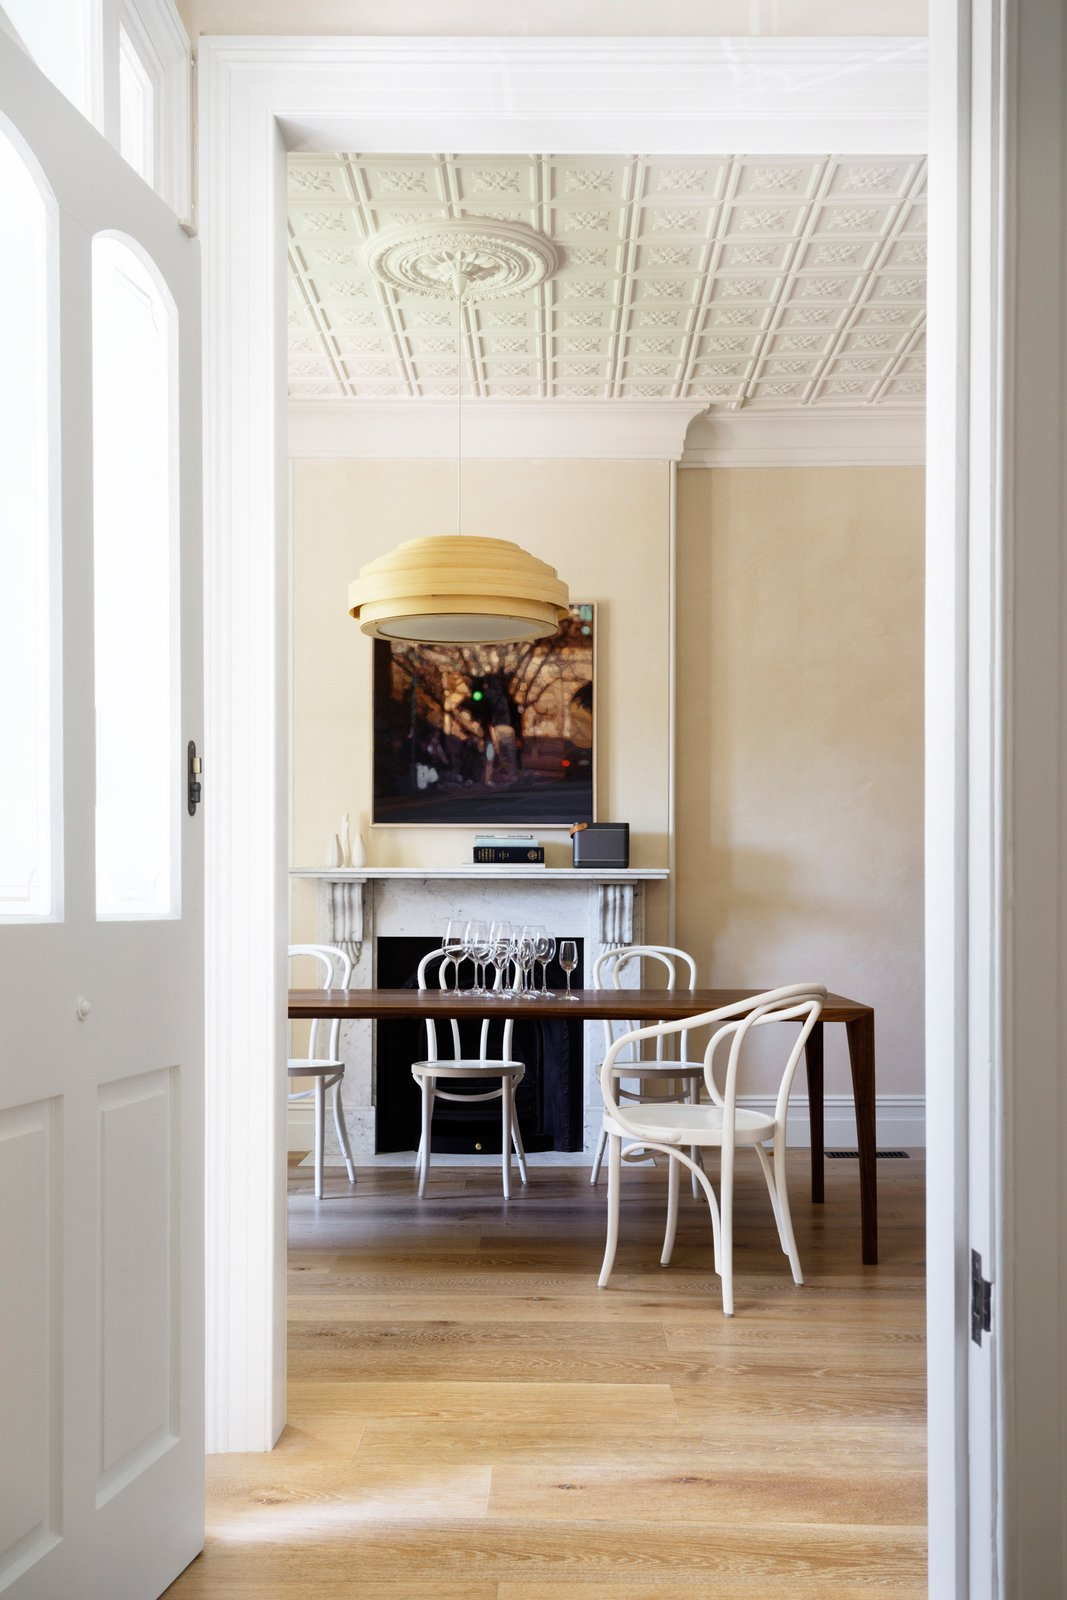 In the dining room the Carrara fire surround, waxed stucco lucido plaster walls and Thonet chairs all have one thing in common, they are all classics, classic materials, classic designs. © Justin Alexander